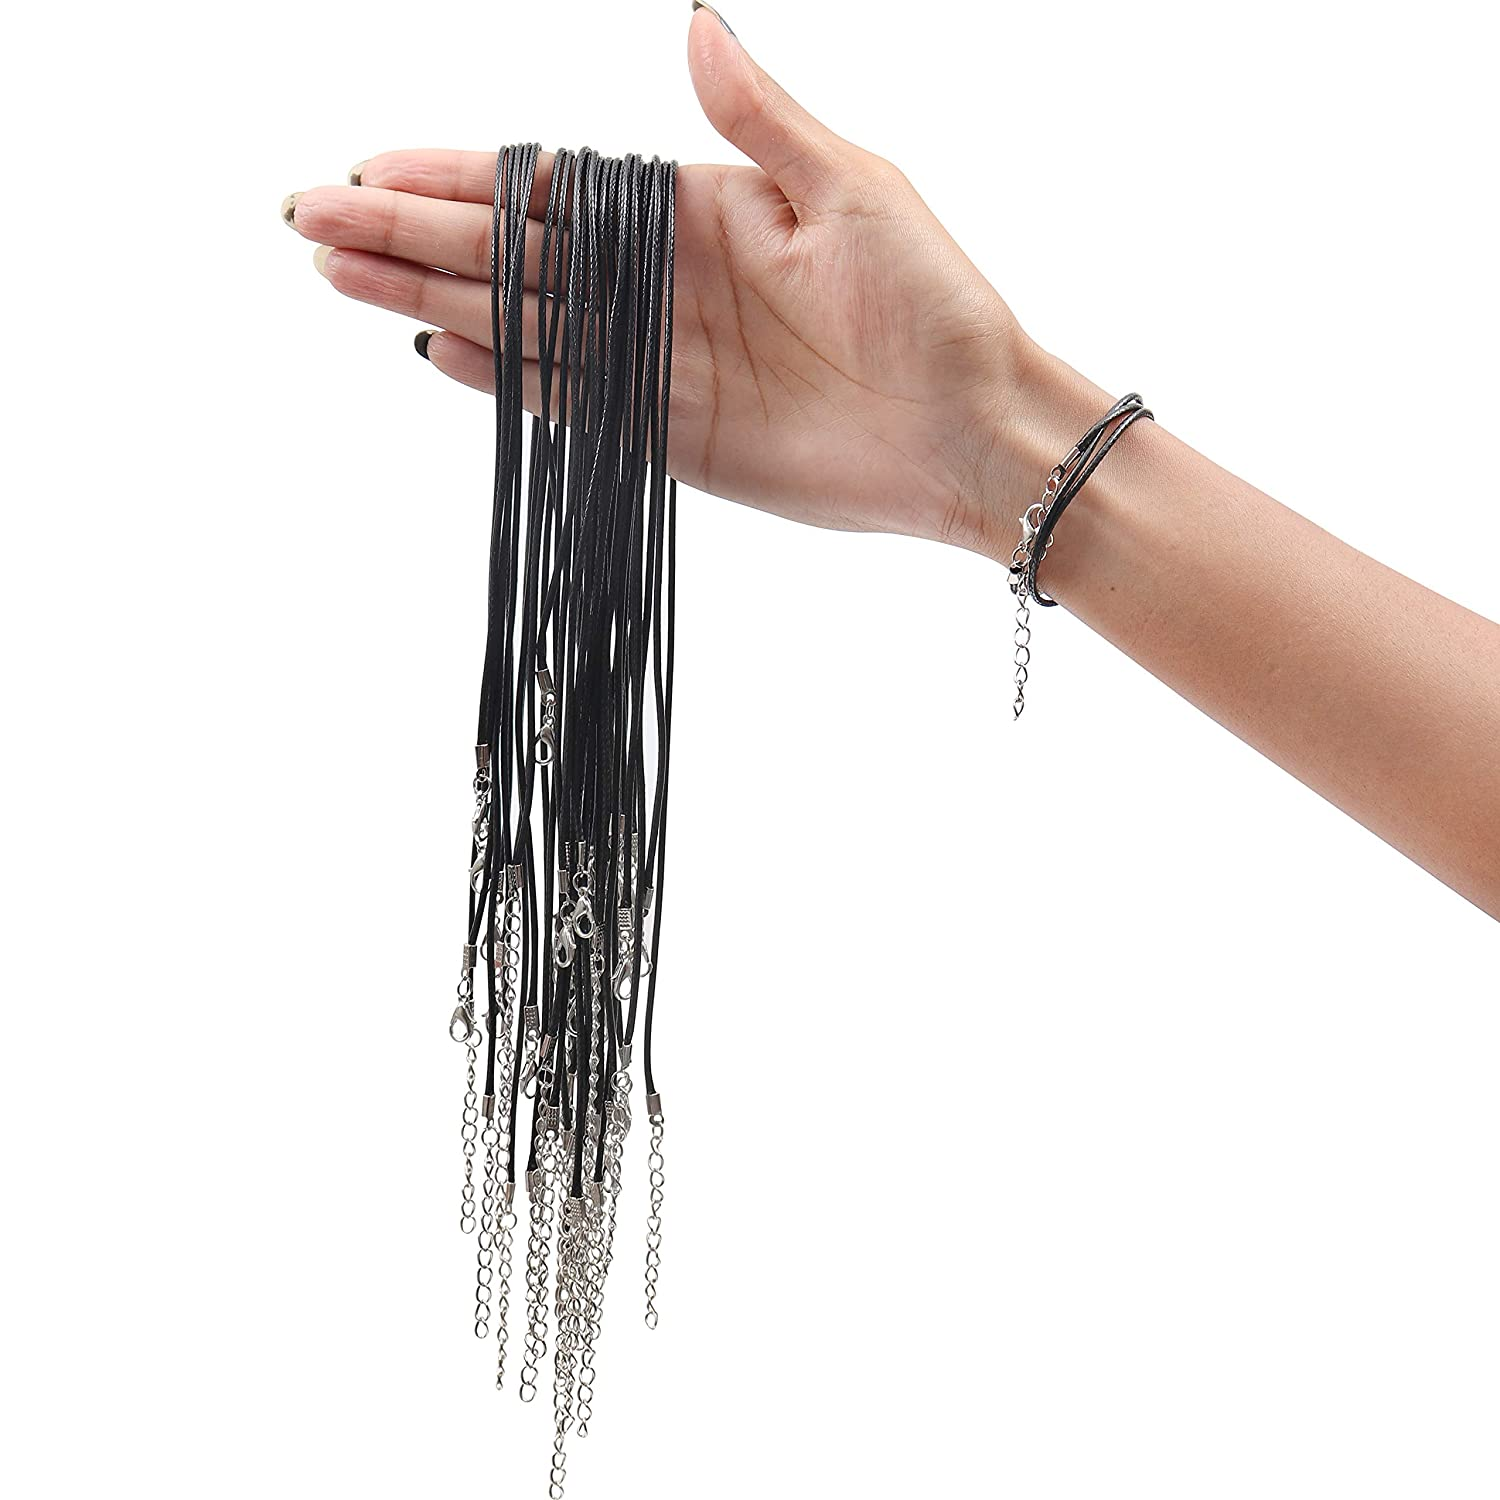 Jewellery Cord 18 and 2mm Thin Black Cord for Jewellery Making Choker Necklace Cord Necklaces 50 pcs Pendant - Nylon Cord with Extension Chain and Lobster Clasp